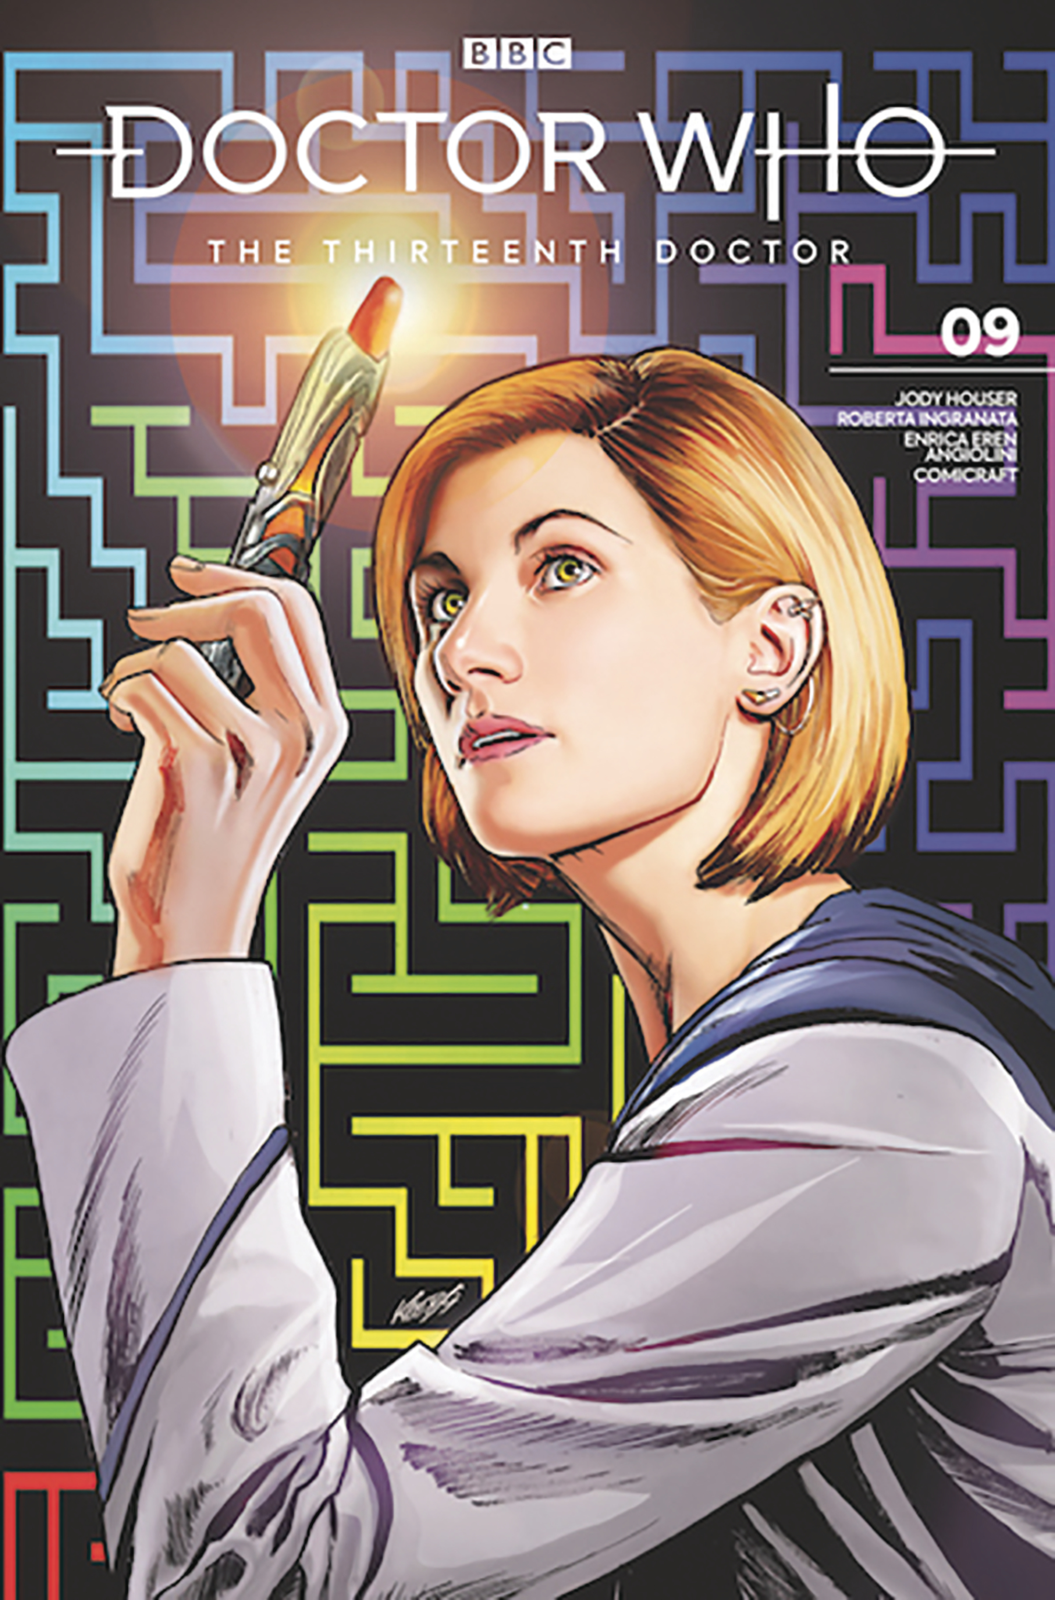 Doctor Who: The 13th Doctor - #9 (SDCC 2019 Variant) by Jody Houser image